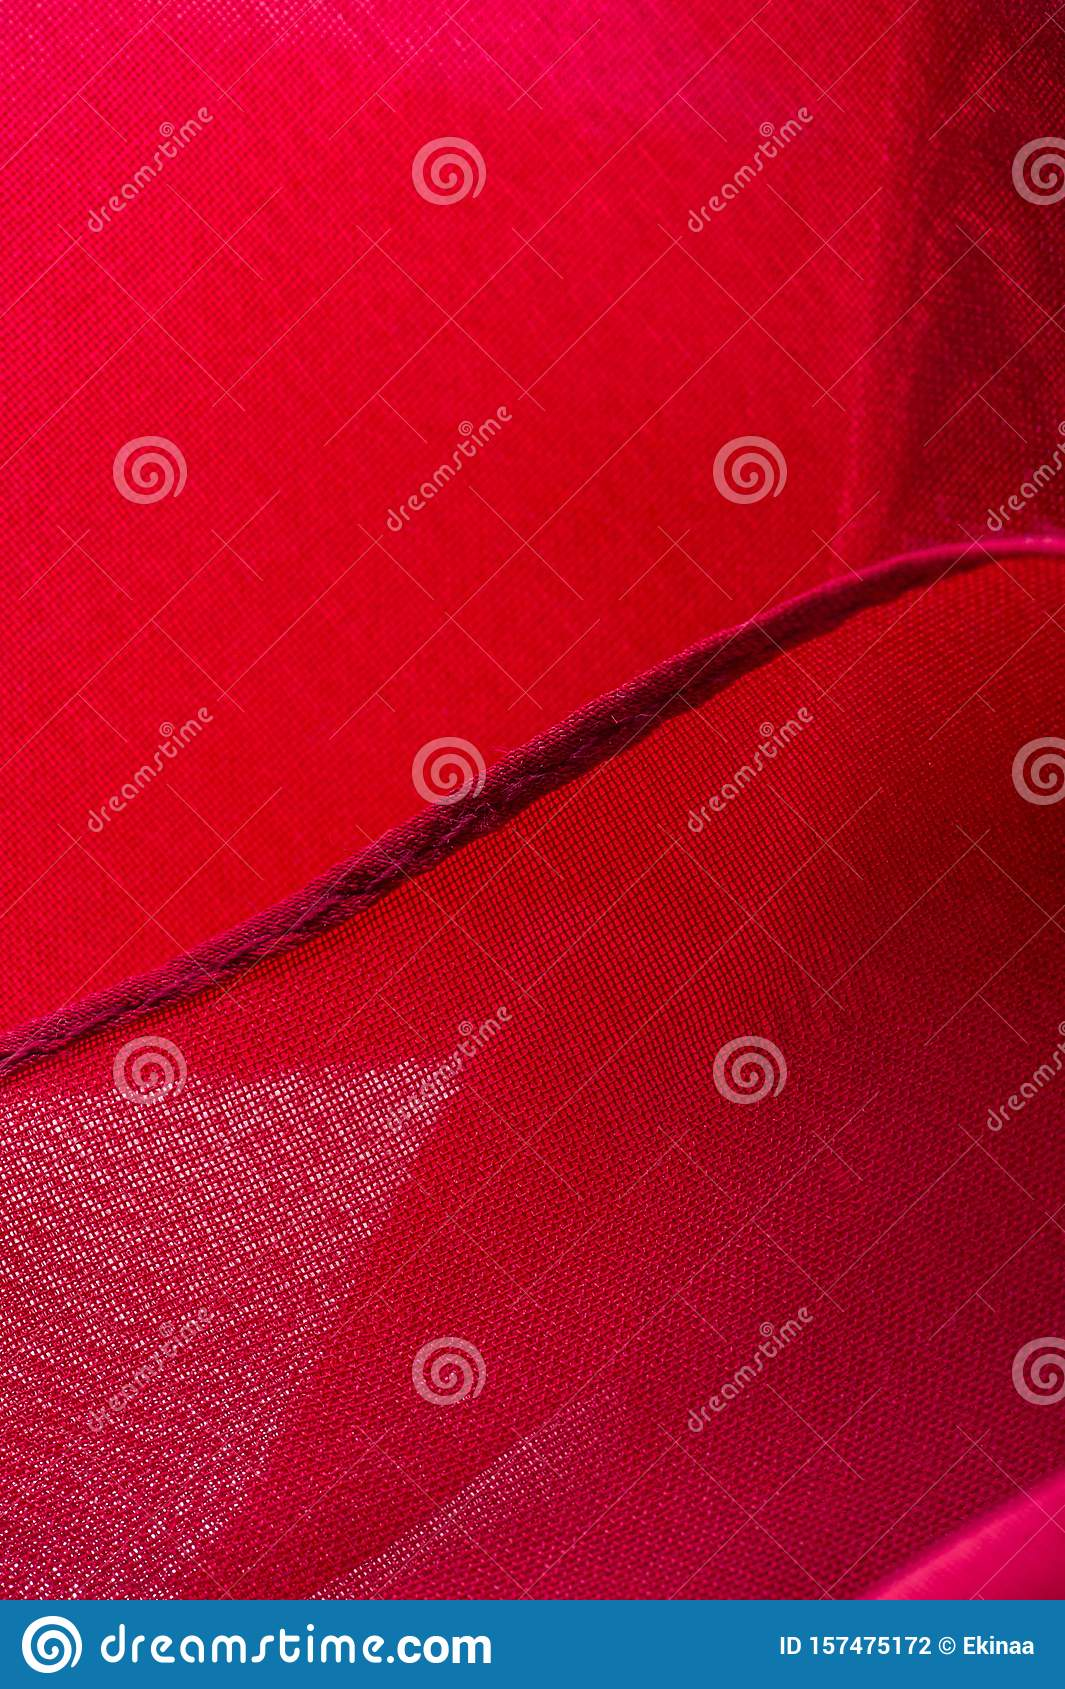 Texture, background, pattern, Red Crimson Silk Fabric This very lightweight rayon fabric has a nice sheen. Perfect for adding